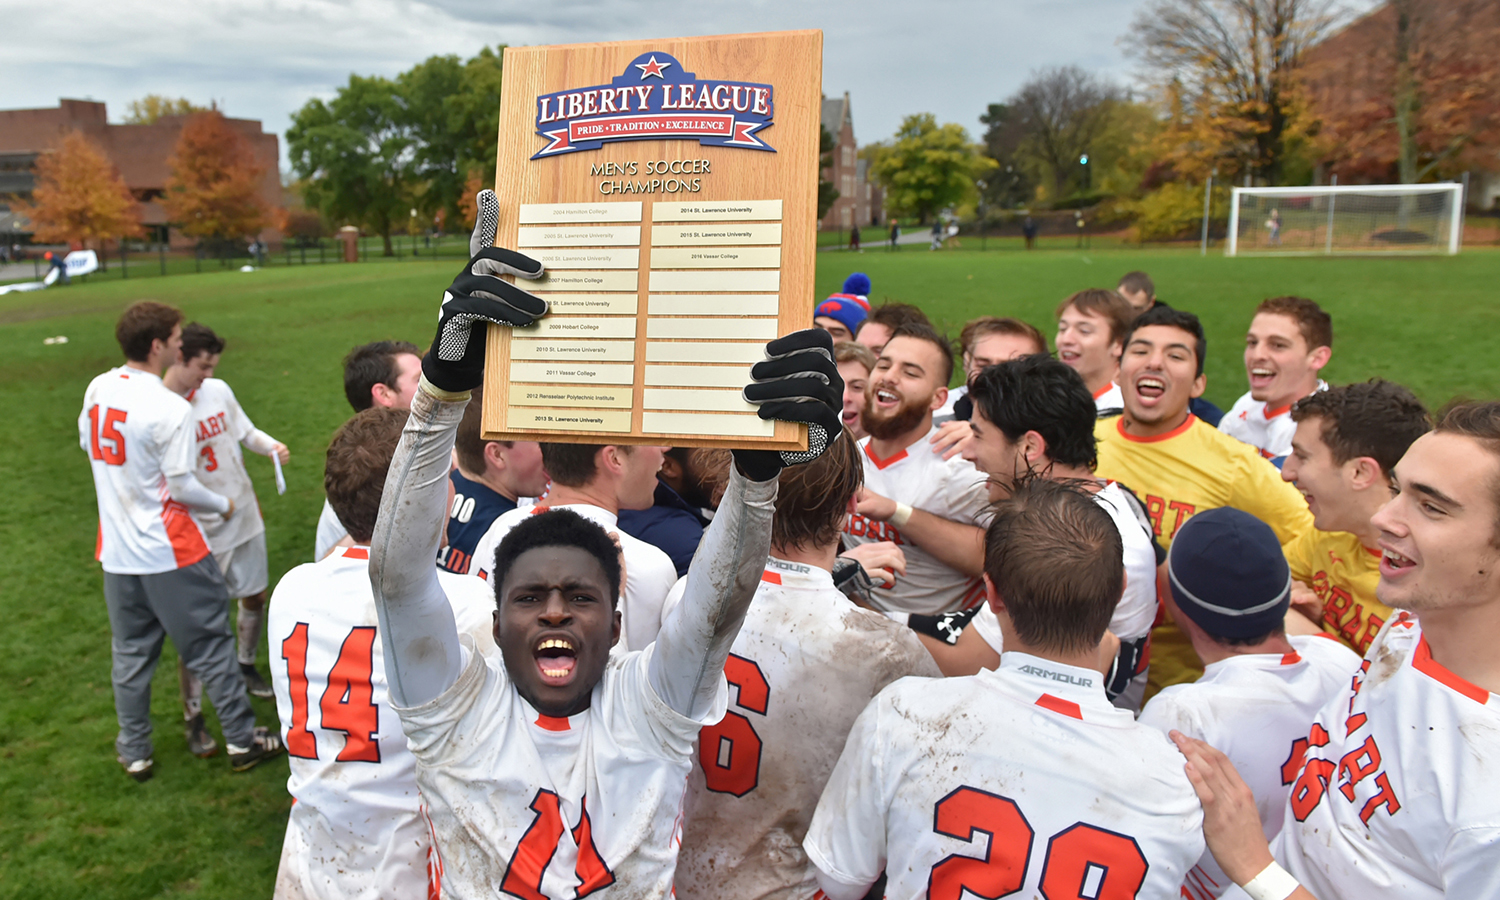 Mouhamed Diouf '19 hoists the Liberty League Championship plaque following Hobart's 2-0 win over Vassar College. It was the Statesmen's second Liberty League crown. Hobart advanced to the second round of the NCAA Tournament.